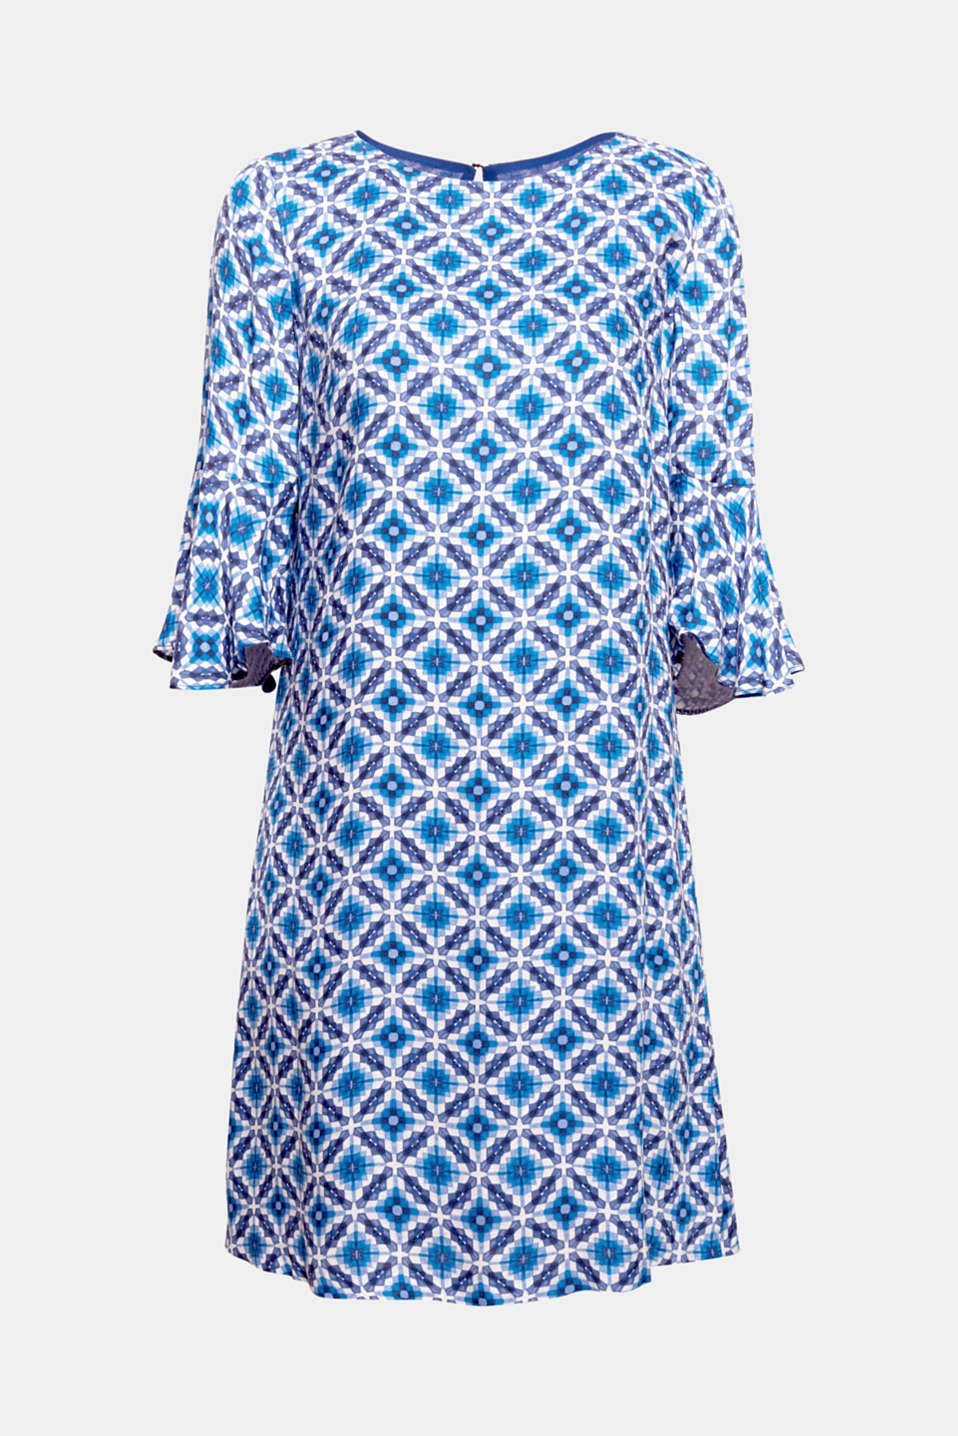 Lightweight material, bold print: this flowing dress with flounce sleeves stands out thanks to the mosaic print!